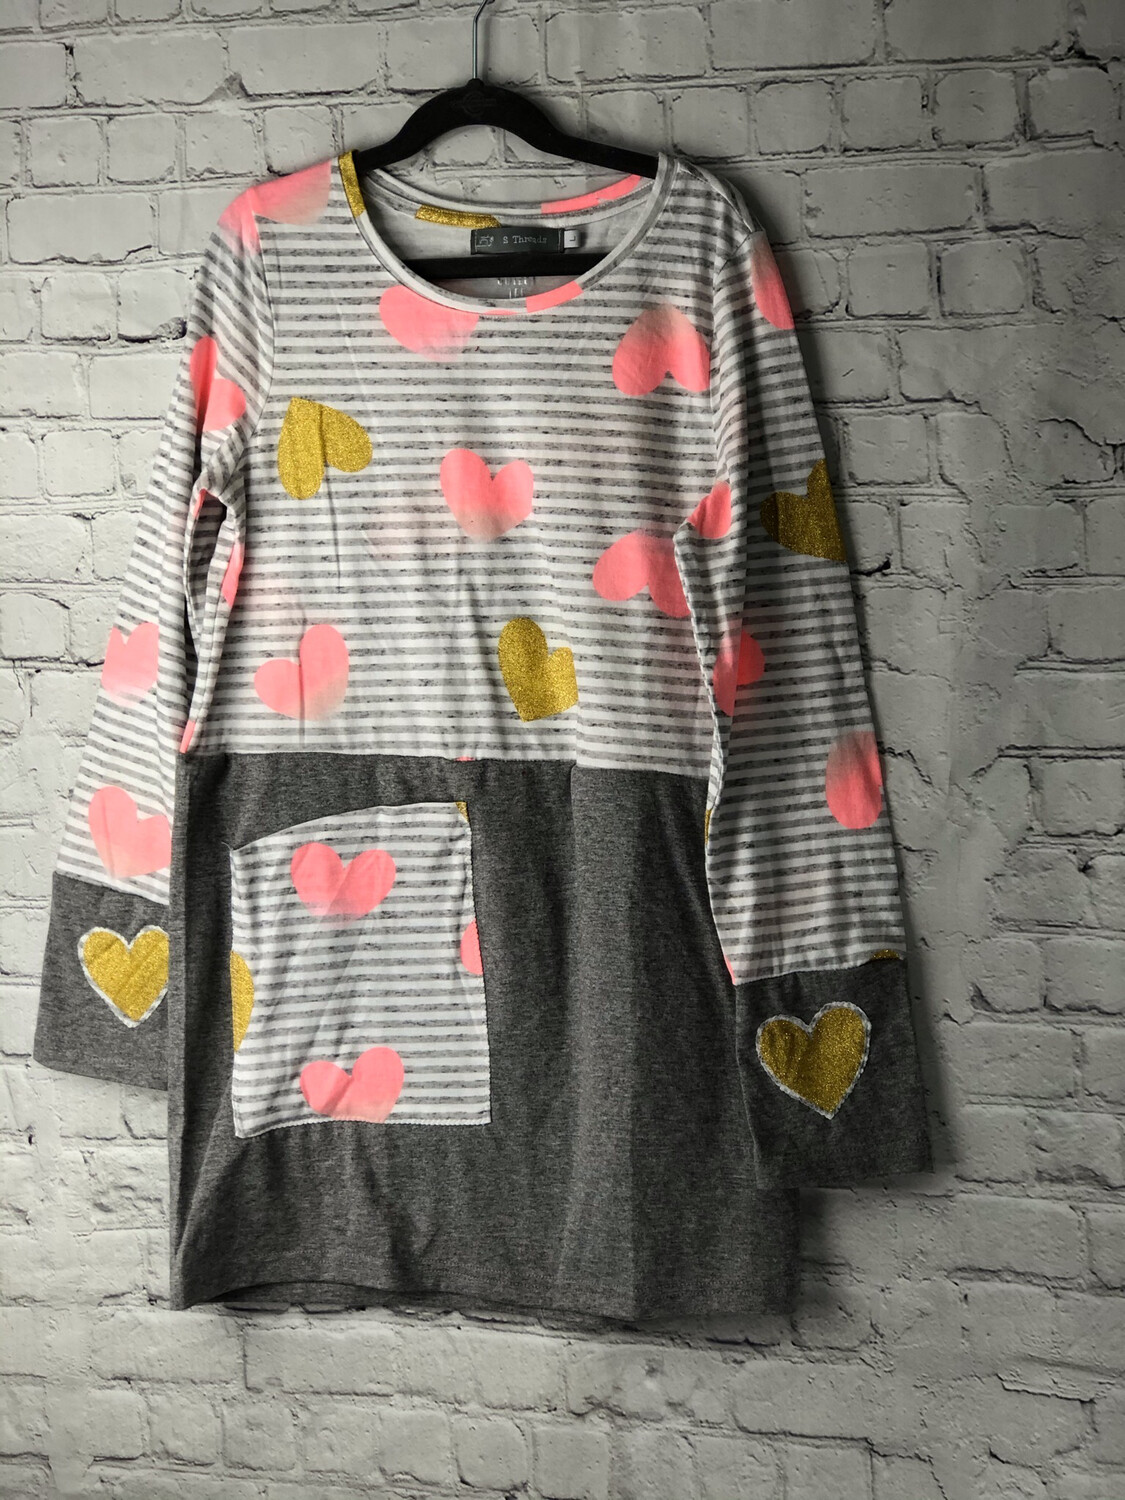 S Threads Kids Upcycled Repurposed Hearts Galore Long Sleeve Cotton Dress Size Child Large w Pocket